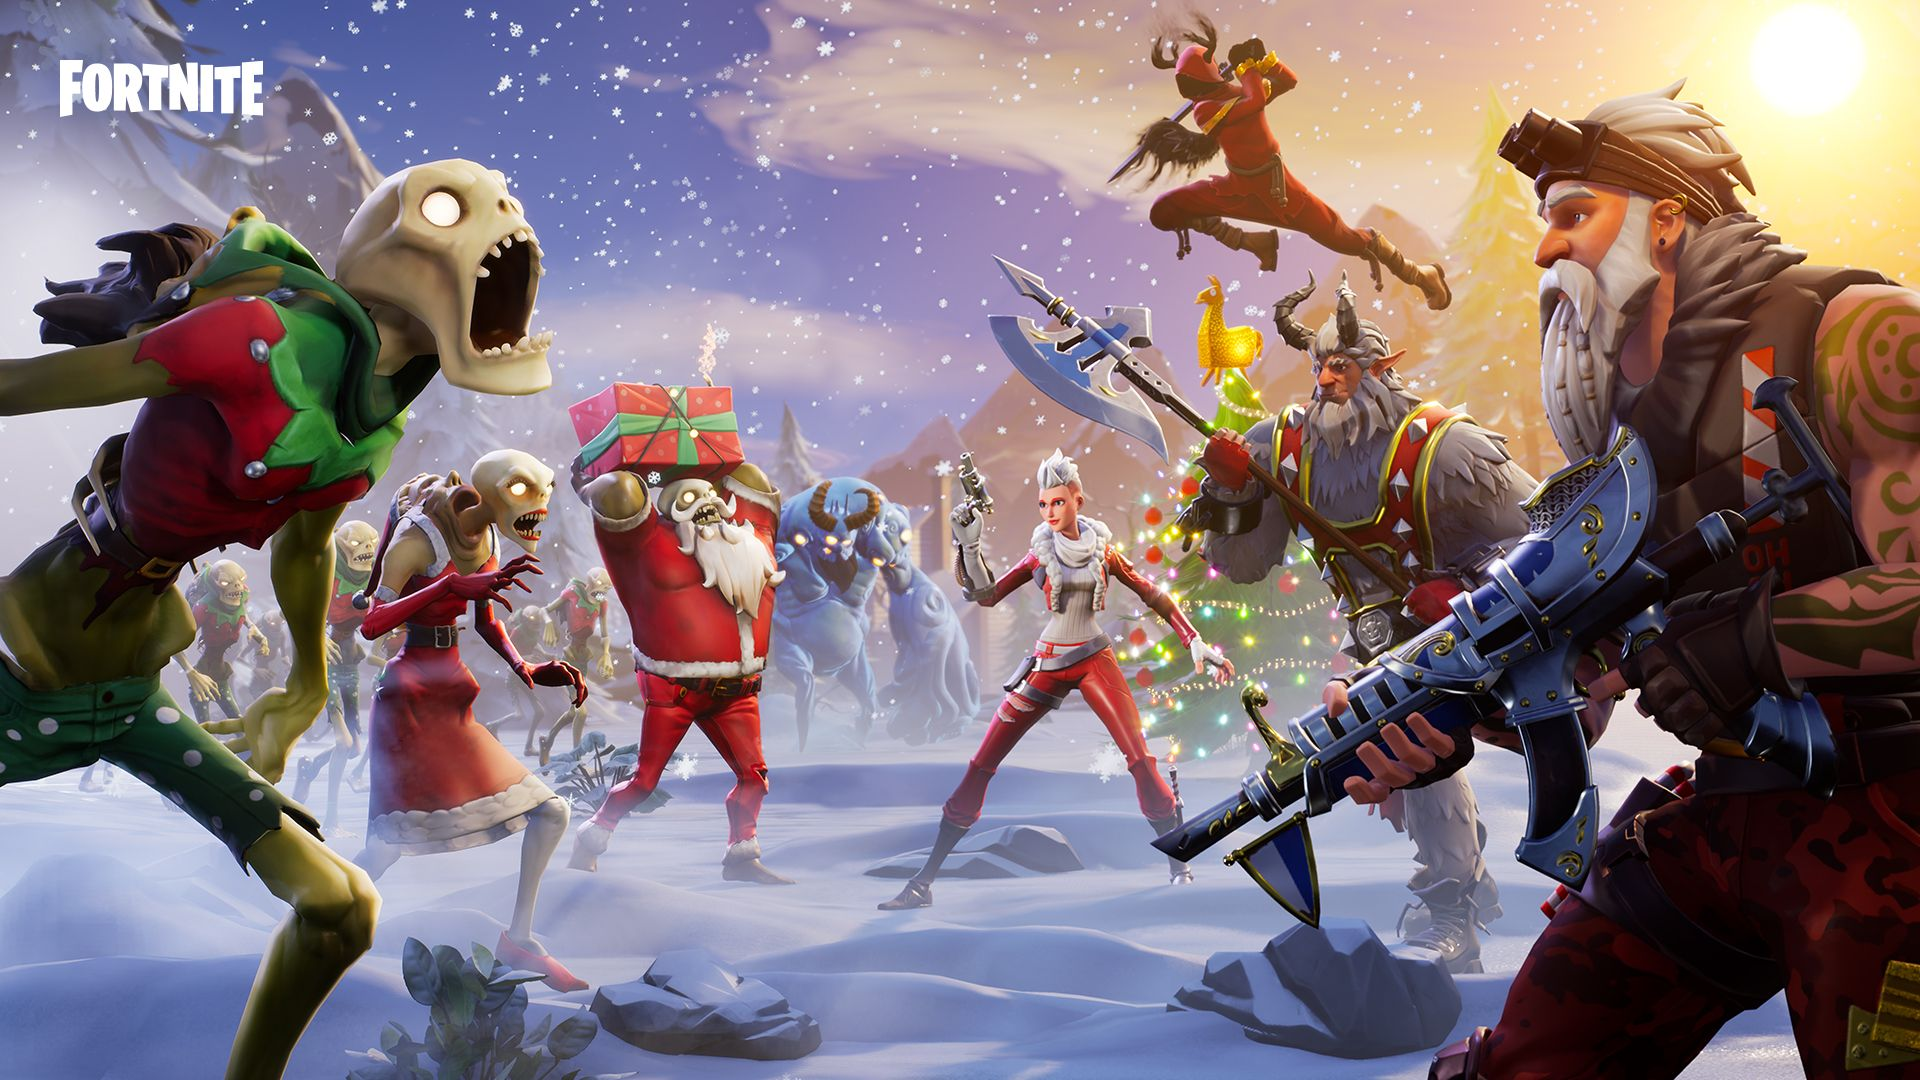 Fortnite' Update 7 10 Adds 14 Days of Challenges & Bug Fixes - Patch